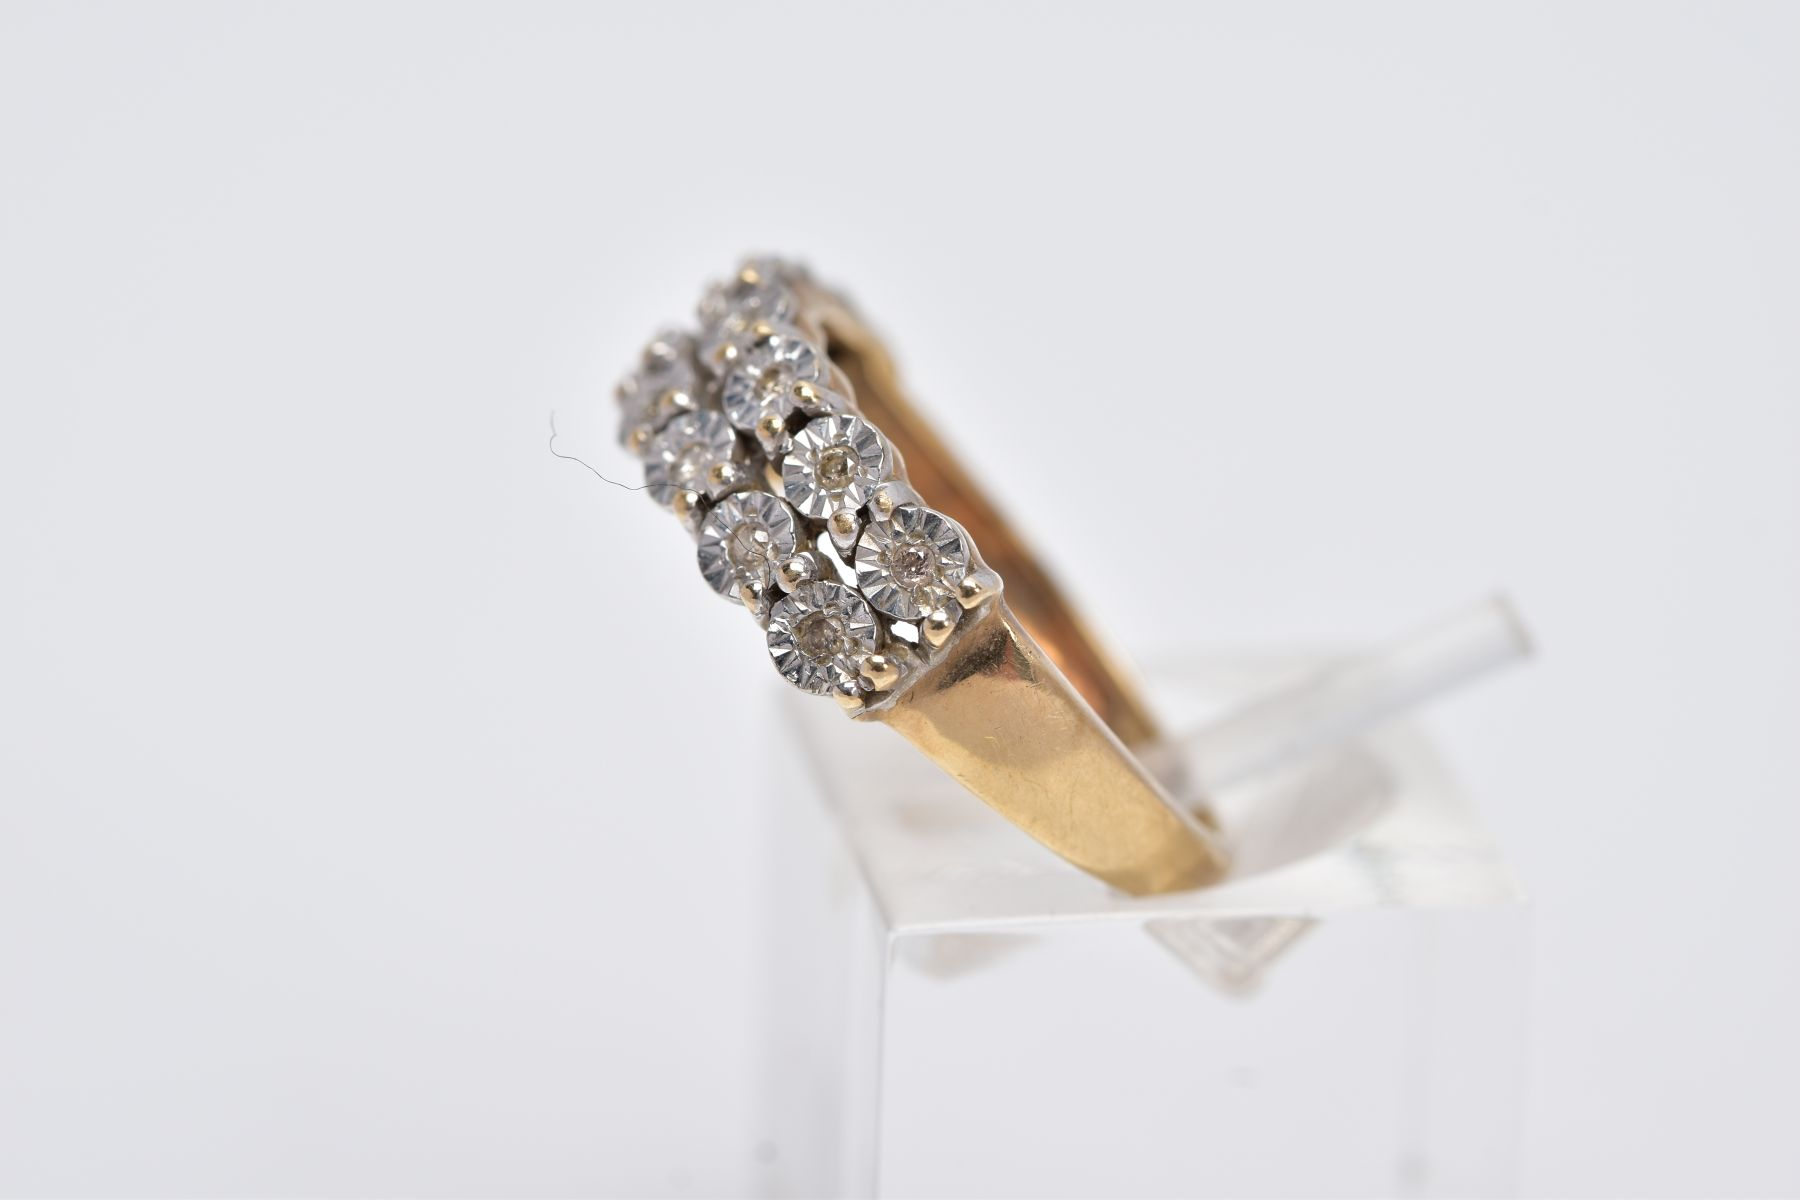 A 9CT GOLD DIAMOND RING, designed with two rows of illusion set, round brilliant cut diamonds, - Image 2 of 4